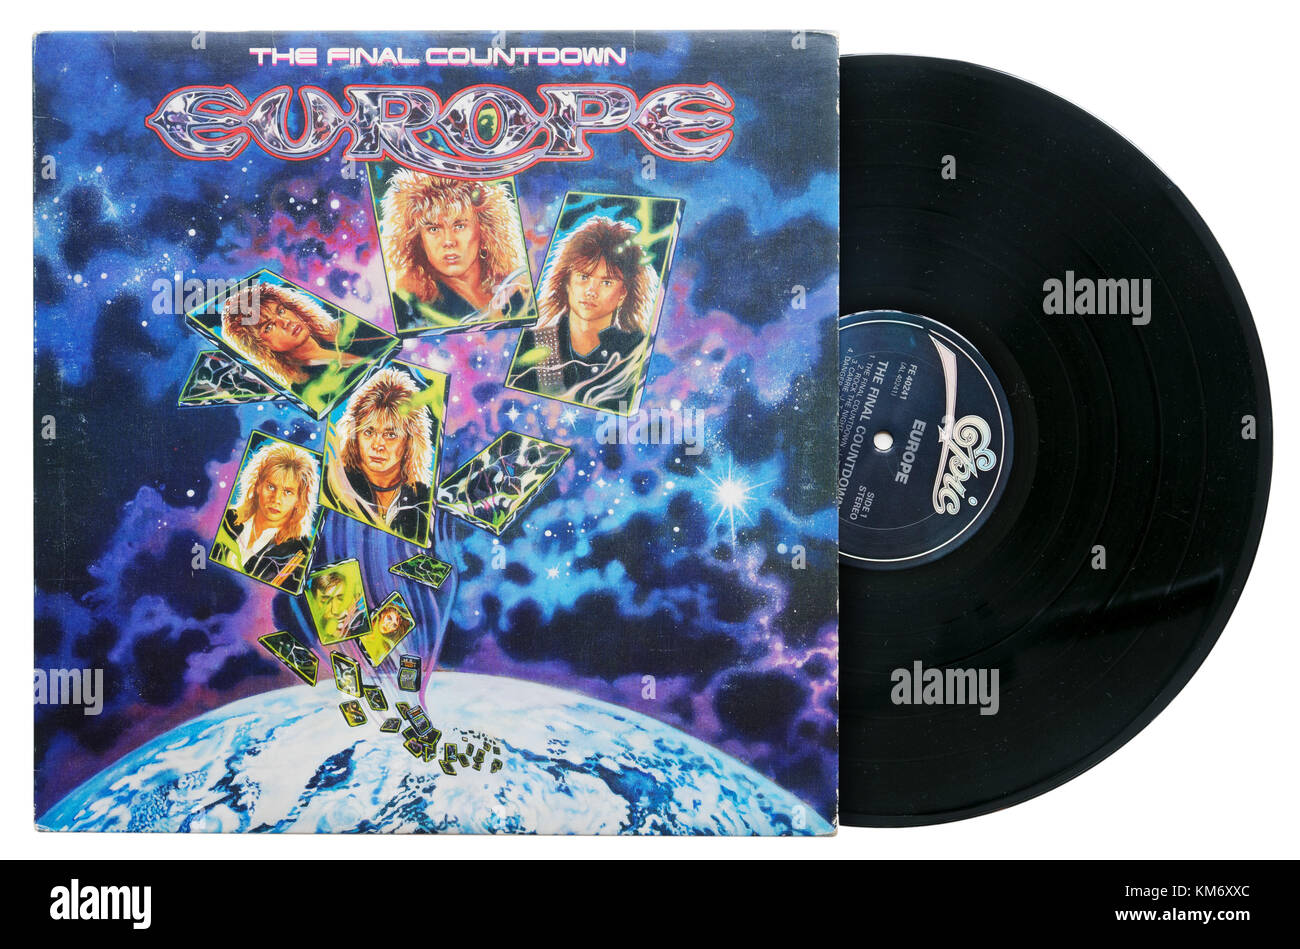 Europe The Final Countdown album - Stock Image